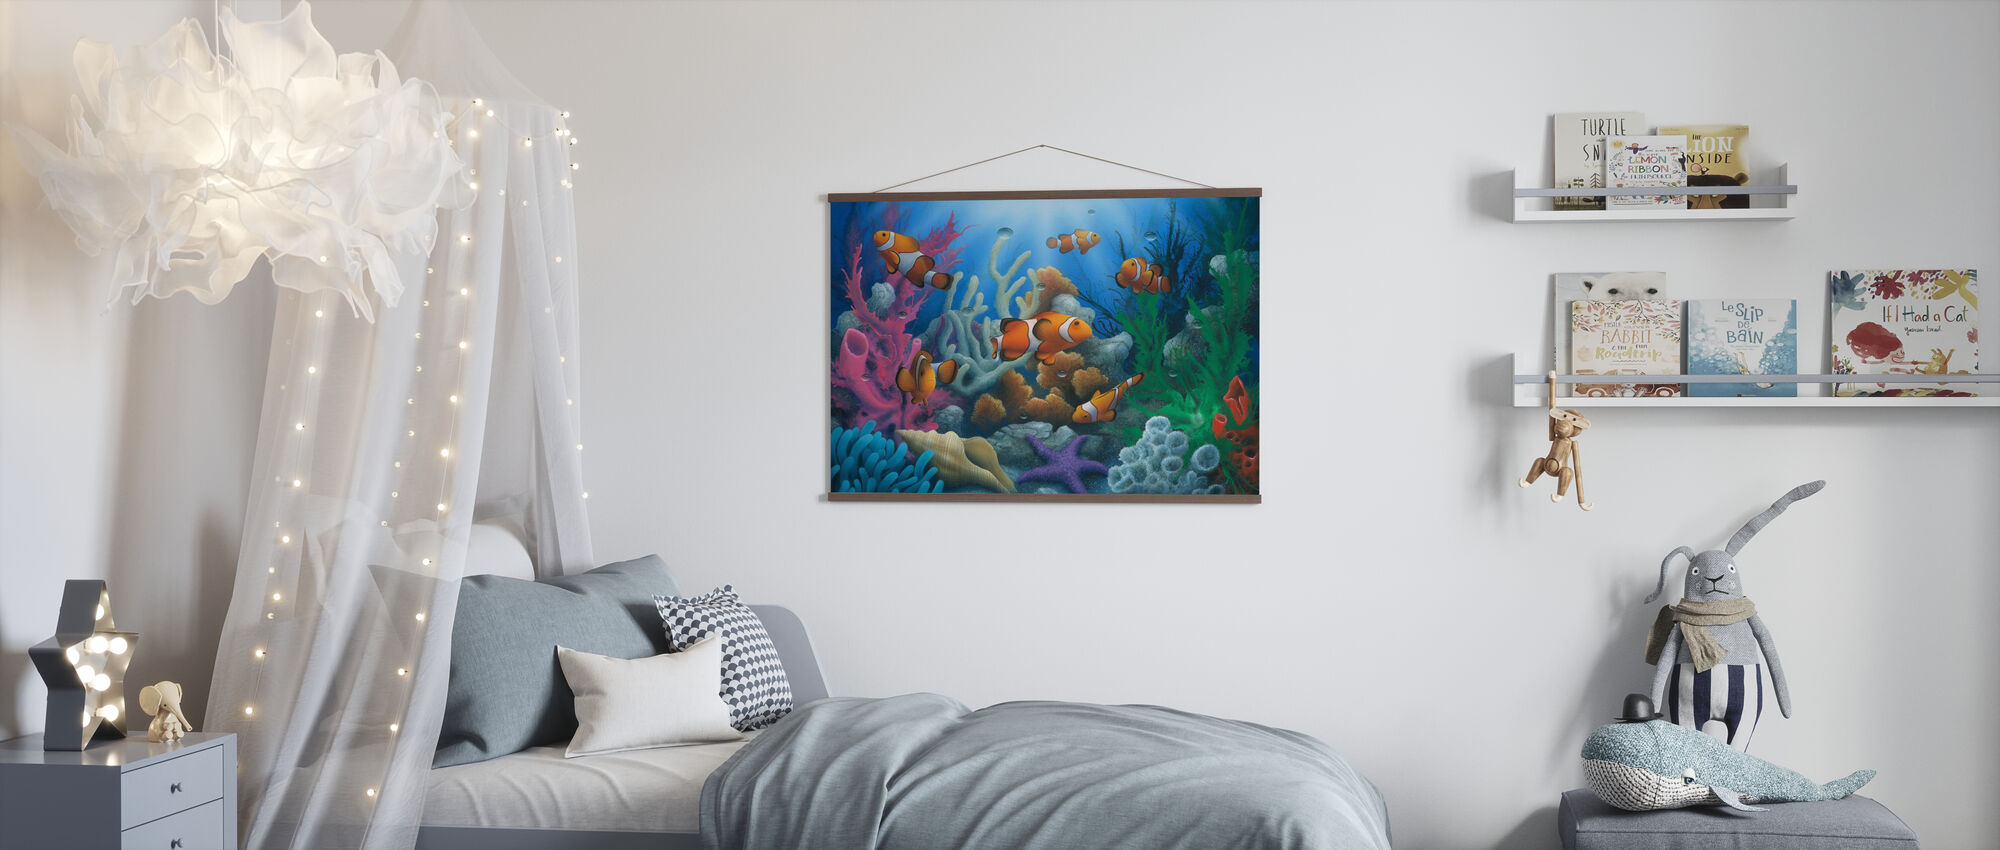 Here Come the Clowns - Poster - Kids Room